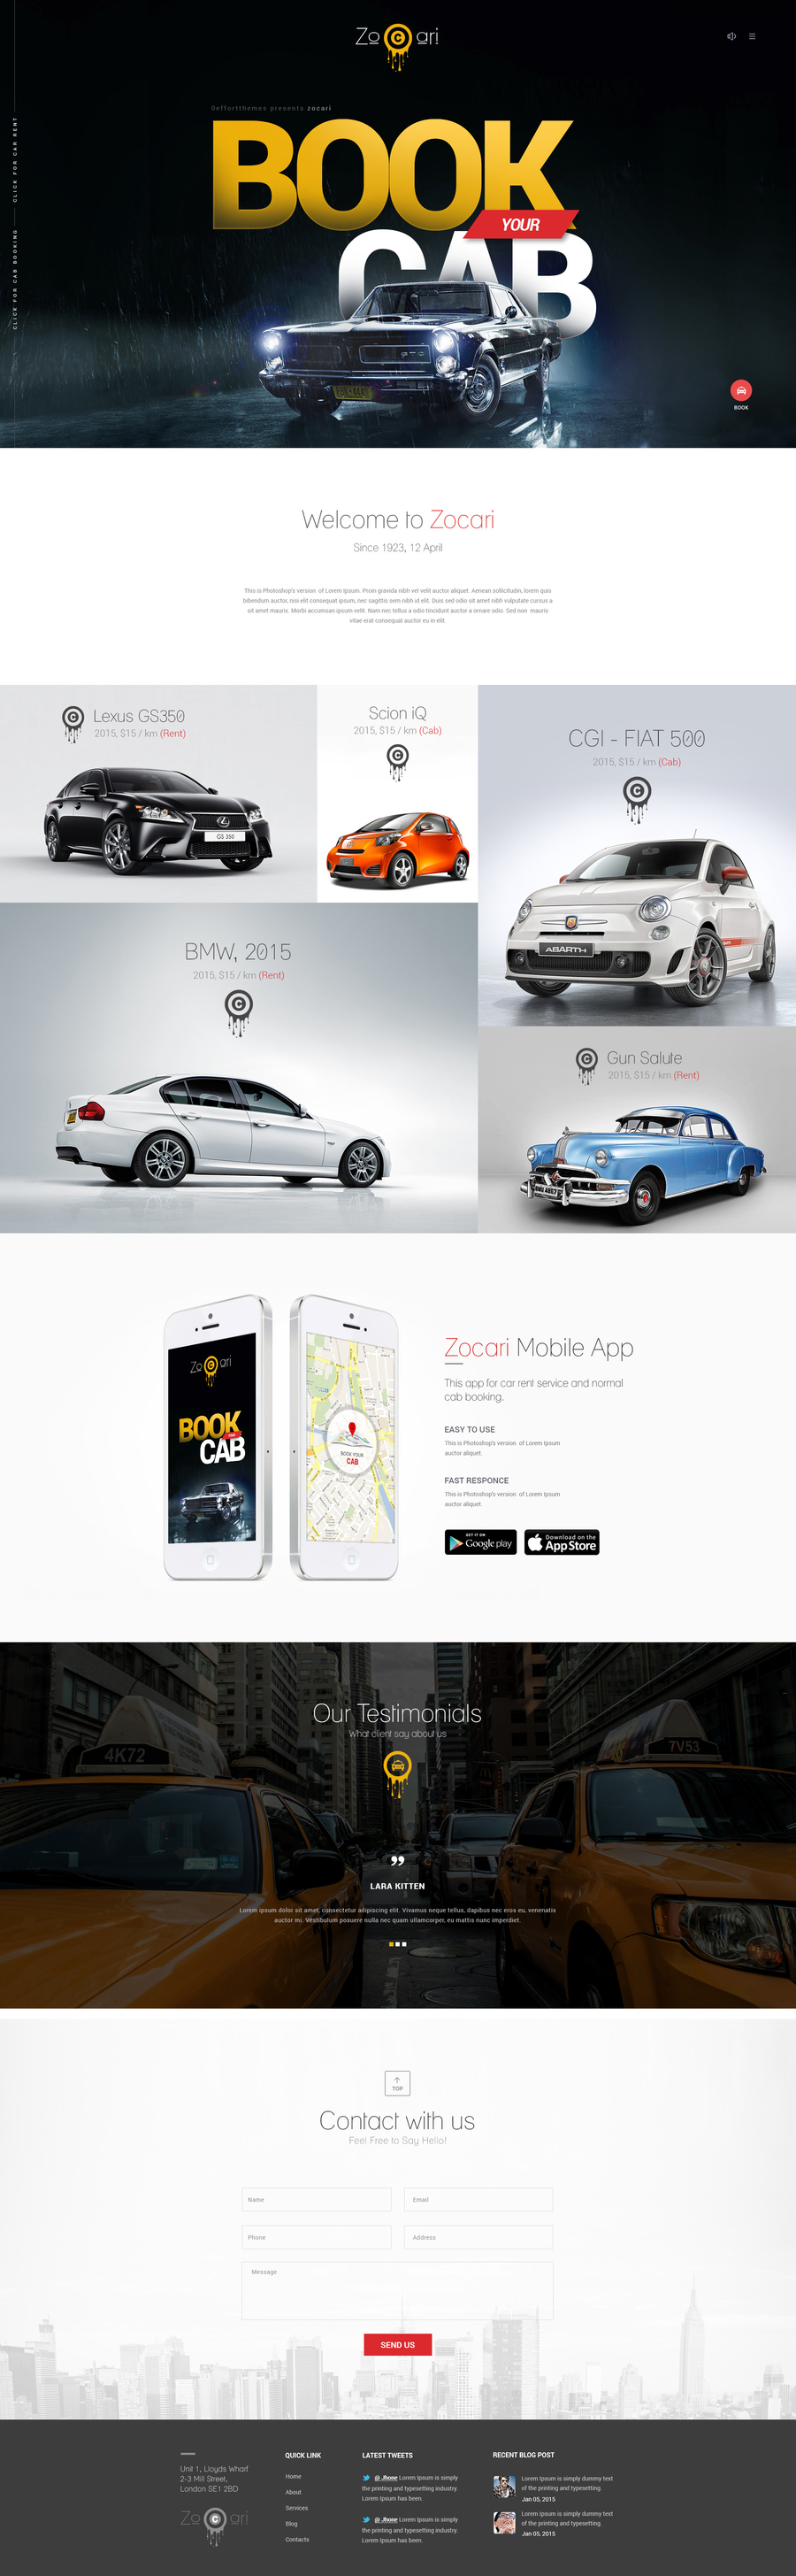 zocari-cab-book-and-rental-psd-template-2